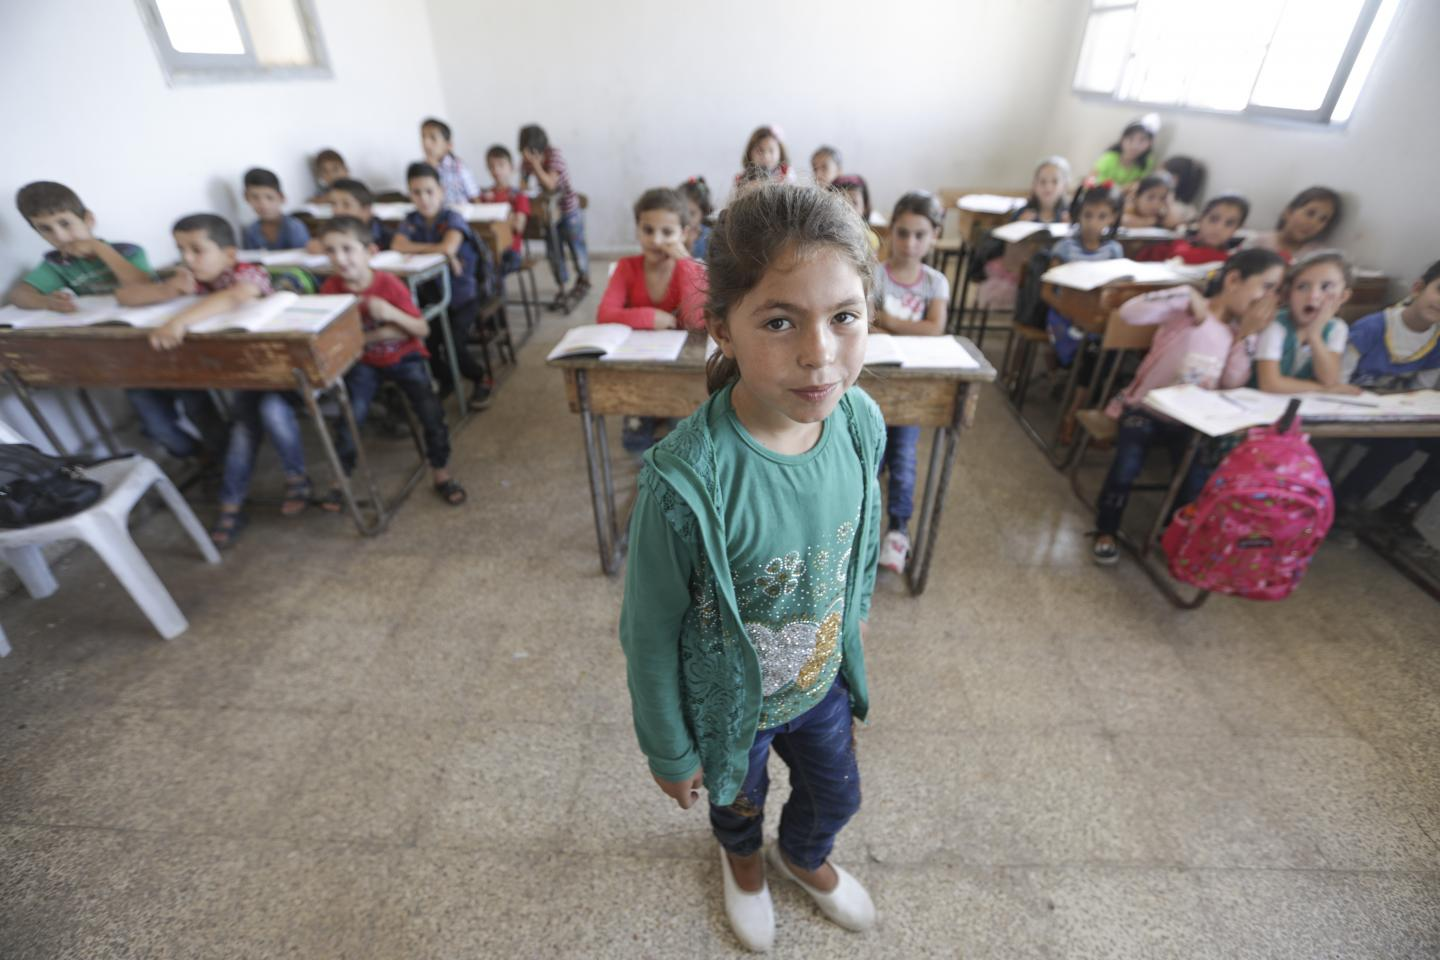 A girl stands at the front of the classroom, Idlib